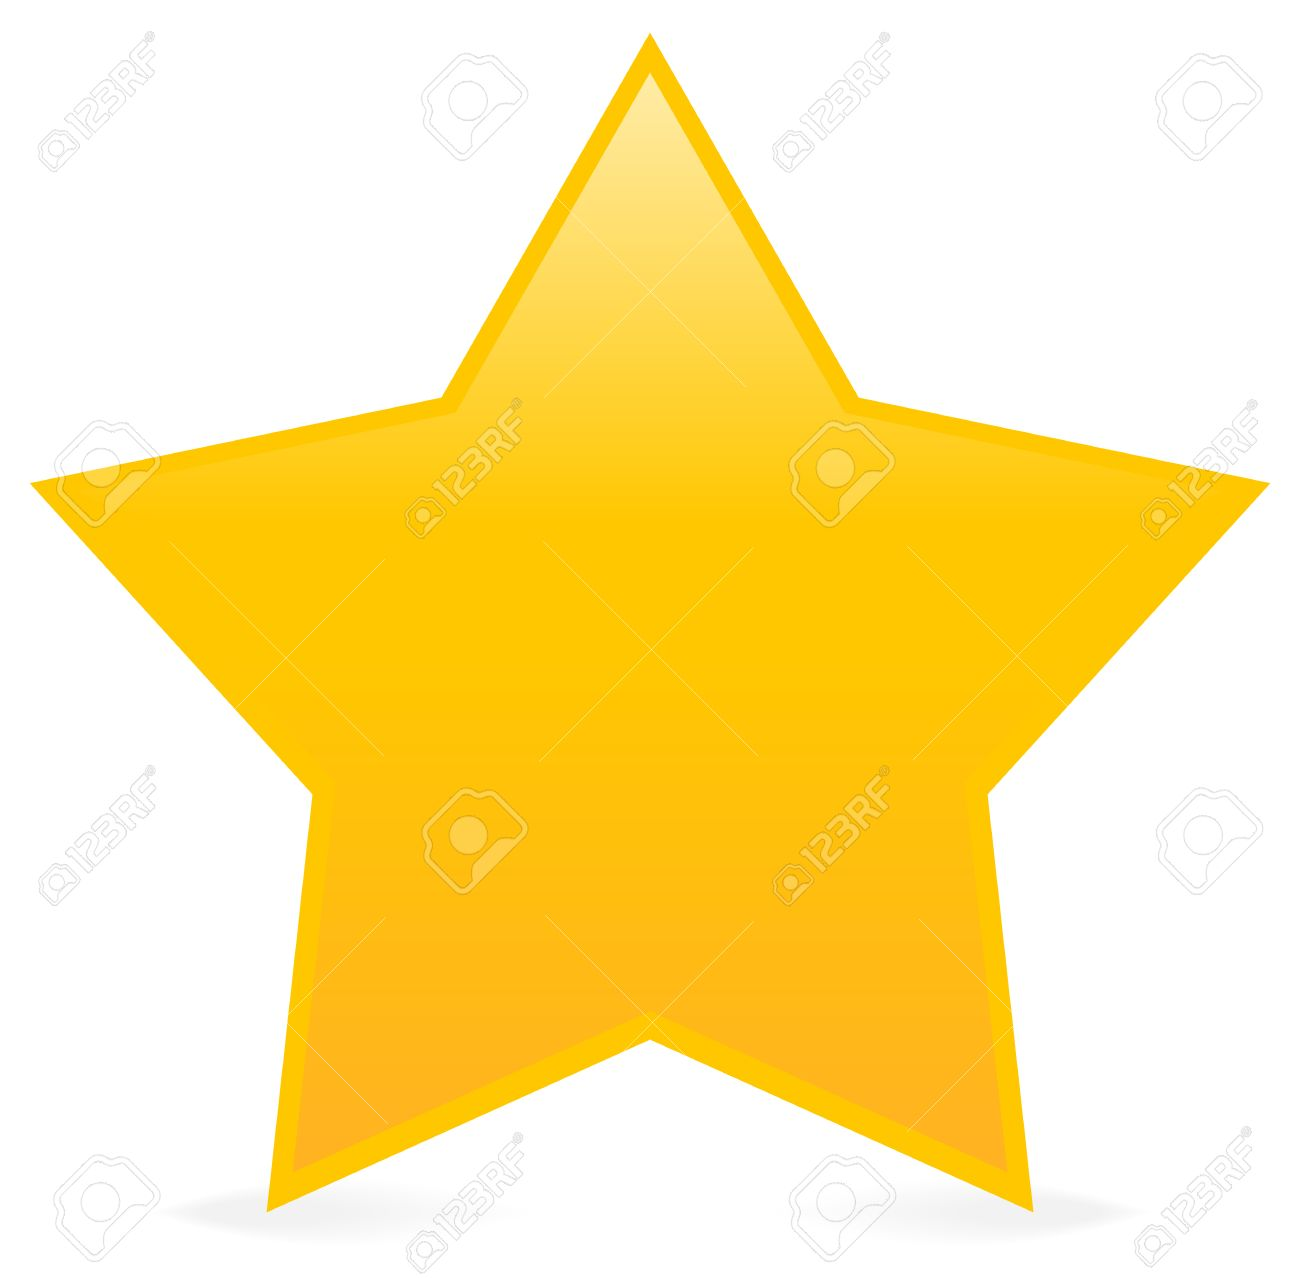 yellow star isolated on white simply star clip art star icon rh 123rf com yellow star pictures clip art